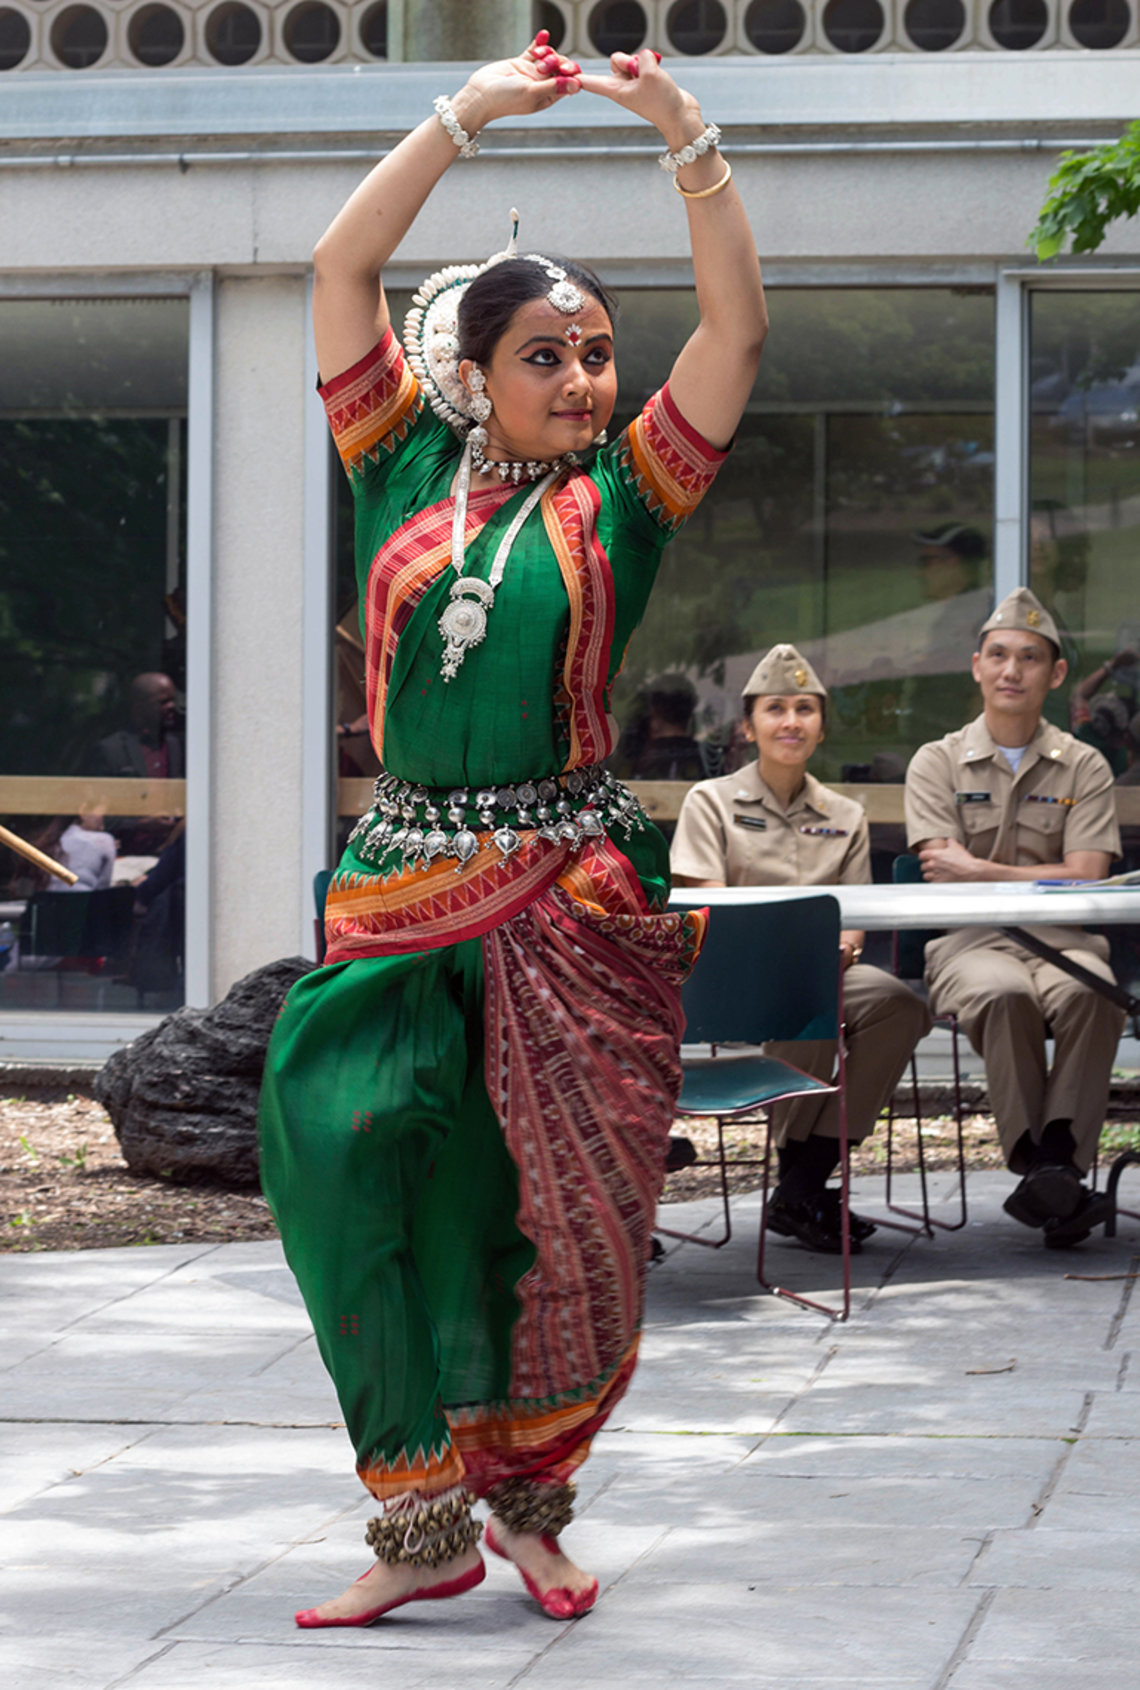 Arpita Sabud performs the Odissi style of traditional Indian dance.